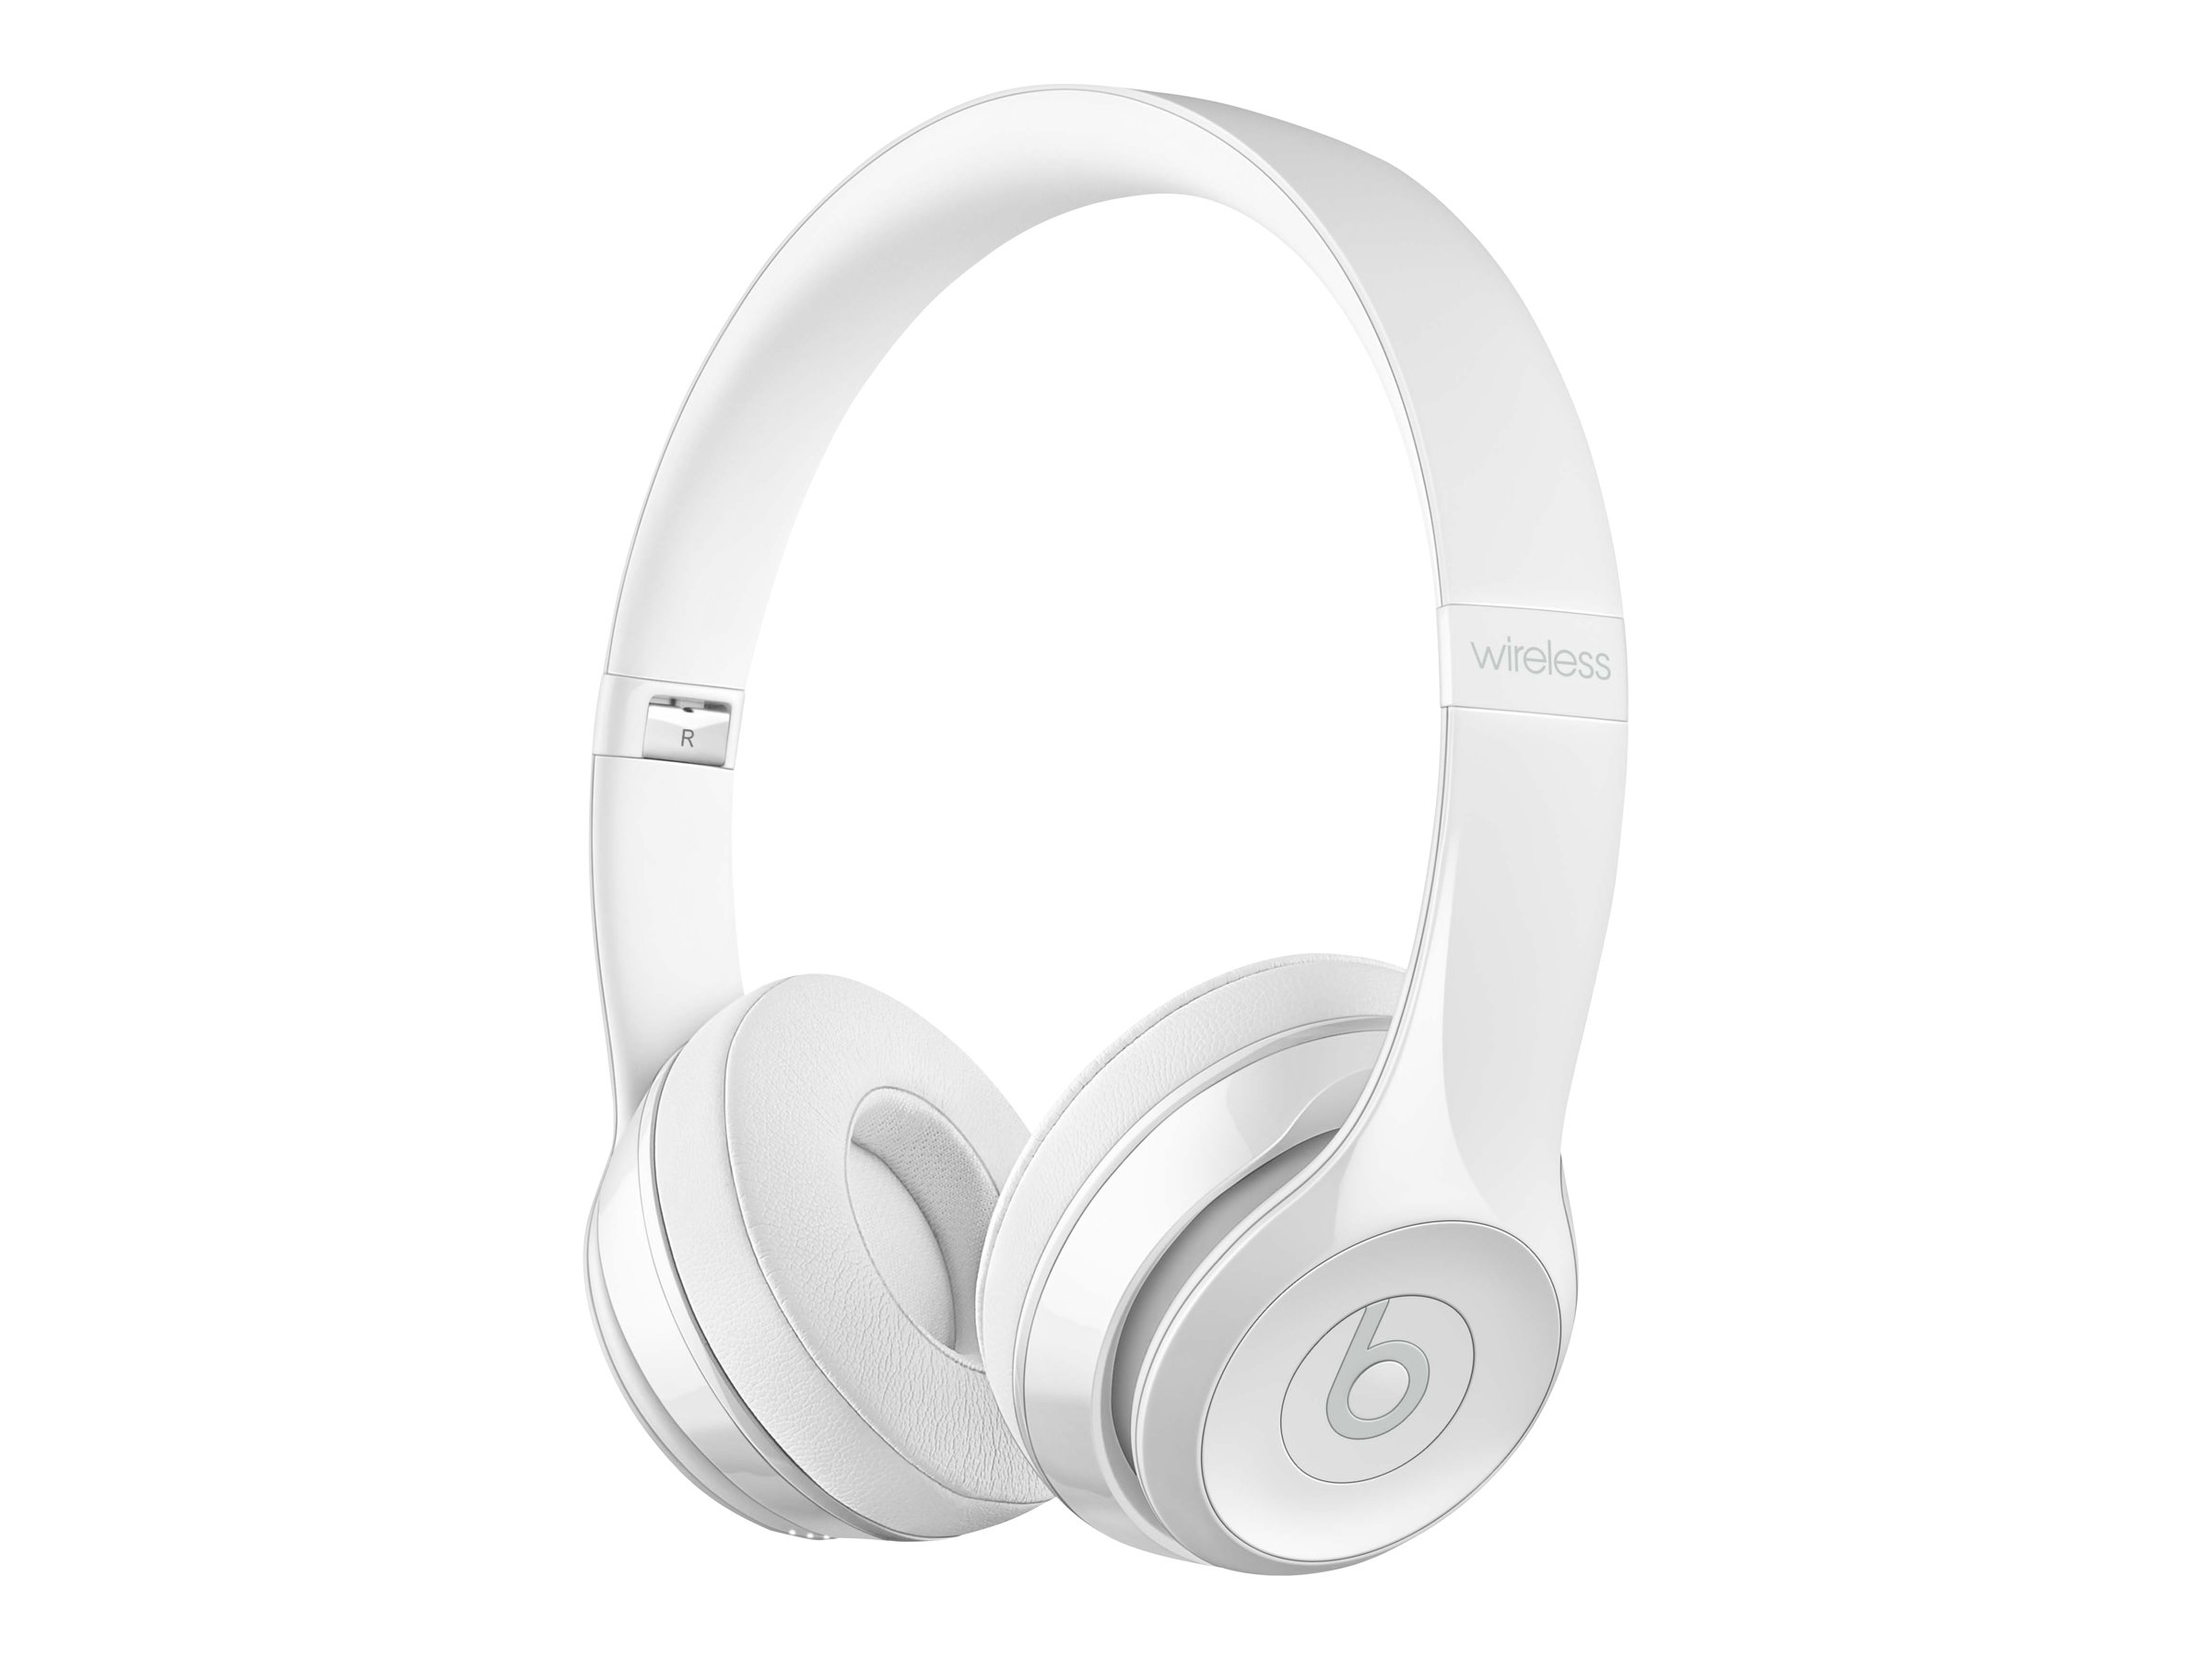 Beats Solo3 - Kopfhörer mit Mikrofon - On-Ear - Bluetooth - drahtlos - White Gloss